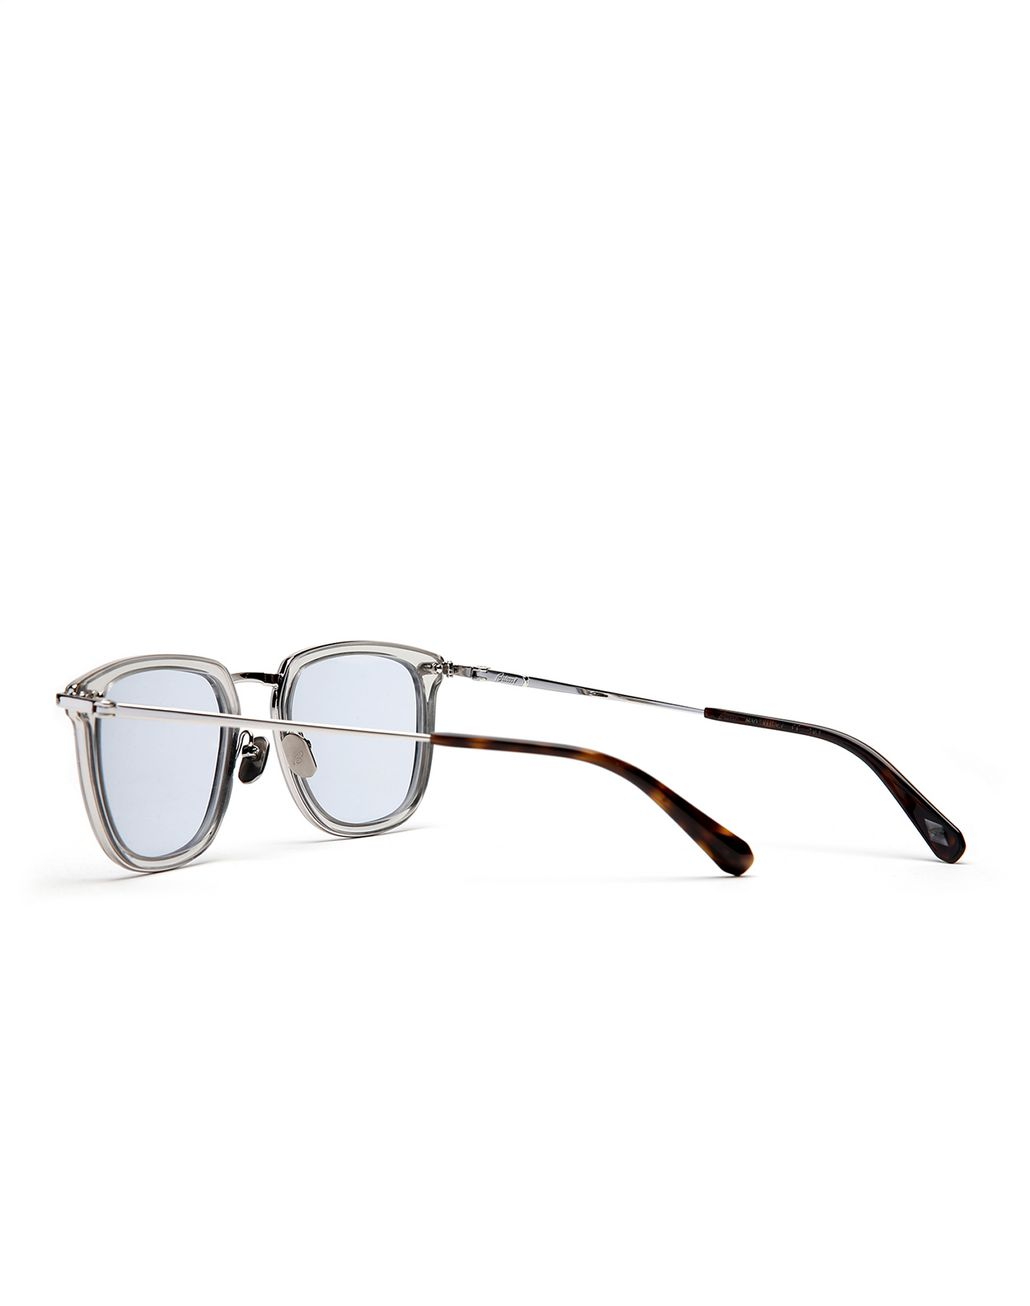 BRIONI Transparent Sunglasses with Light Blue Lenses  Sunglasses Man d